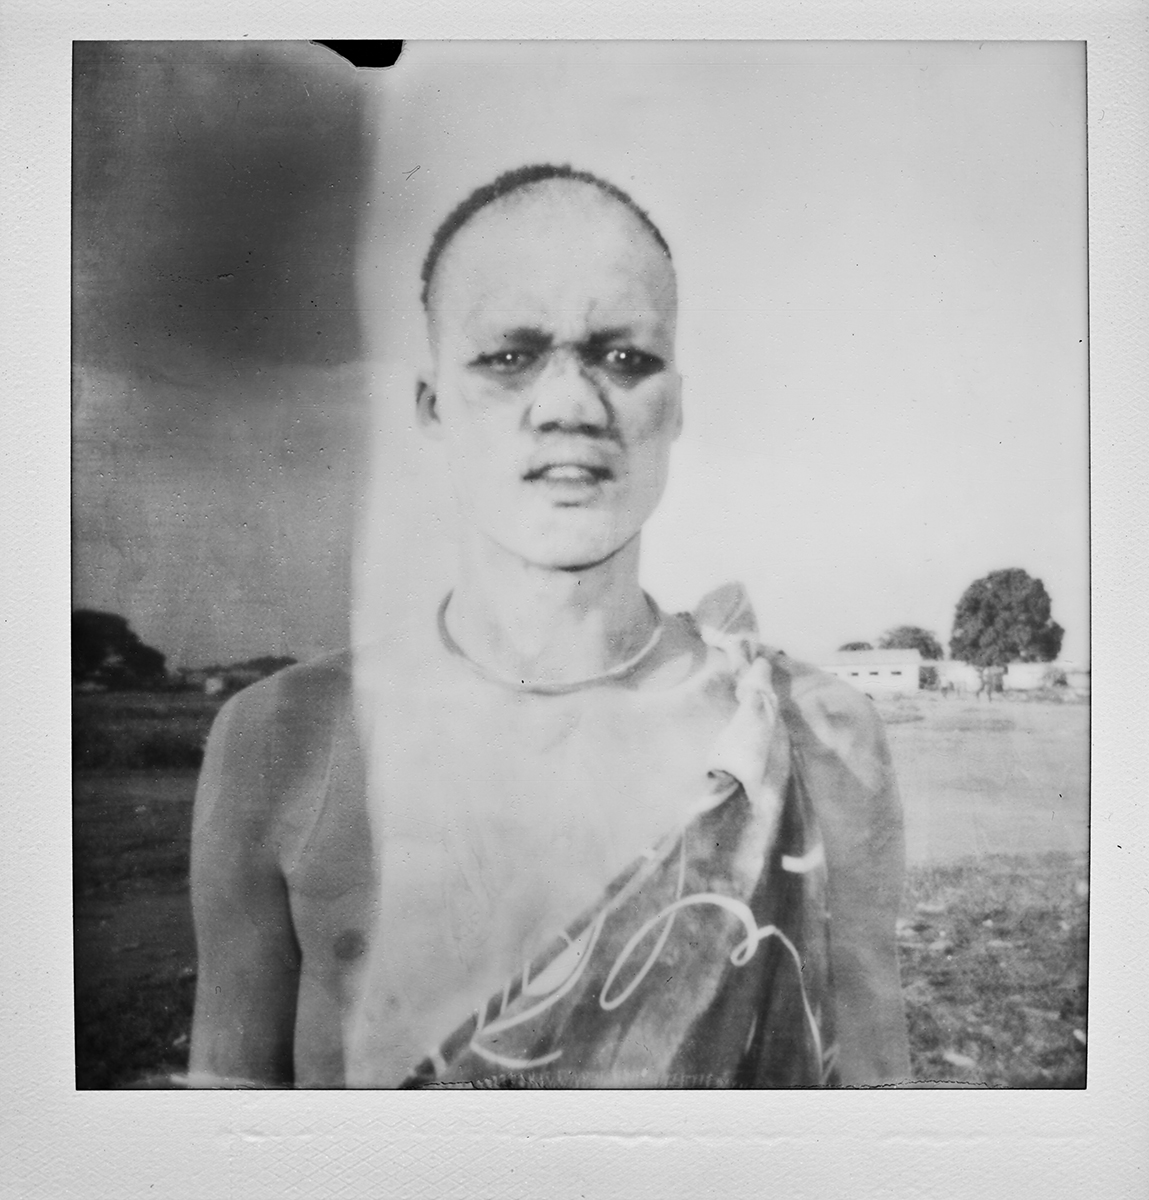 A polaroid of a Mundari goat herder at a livestock market outside Juba, South Sudan. June 2011.